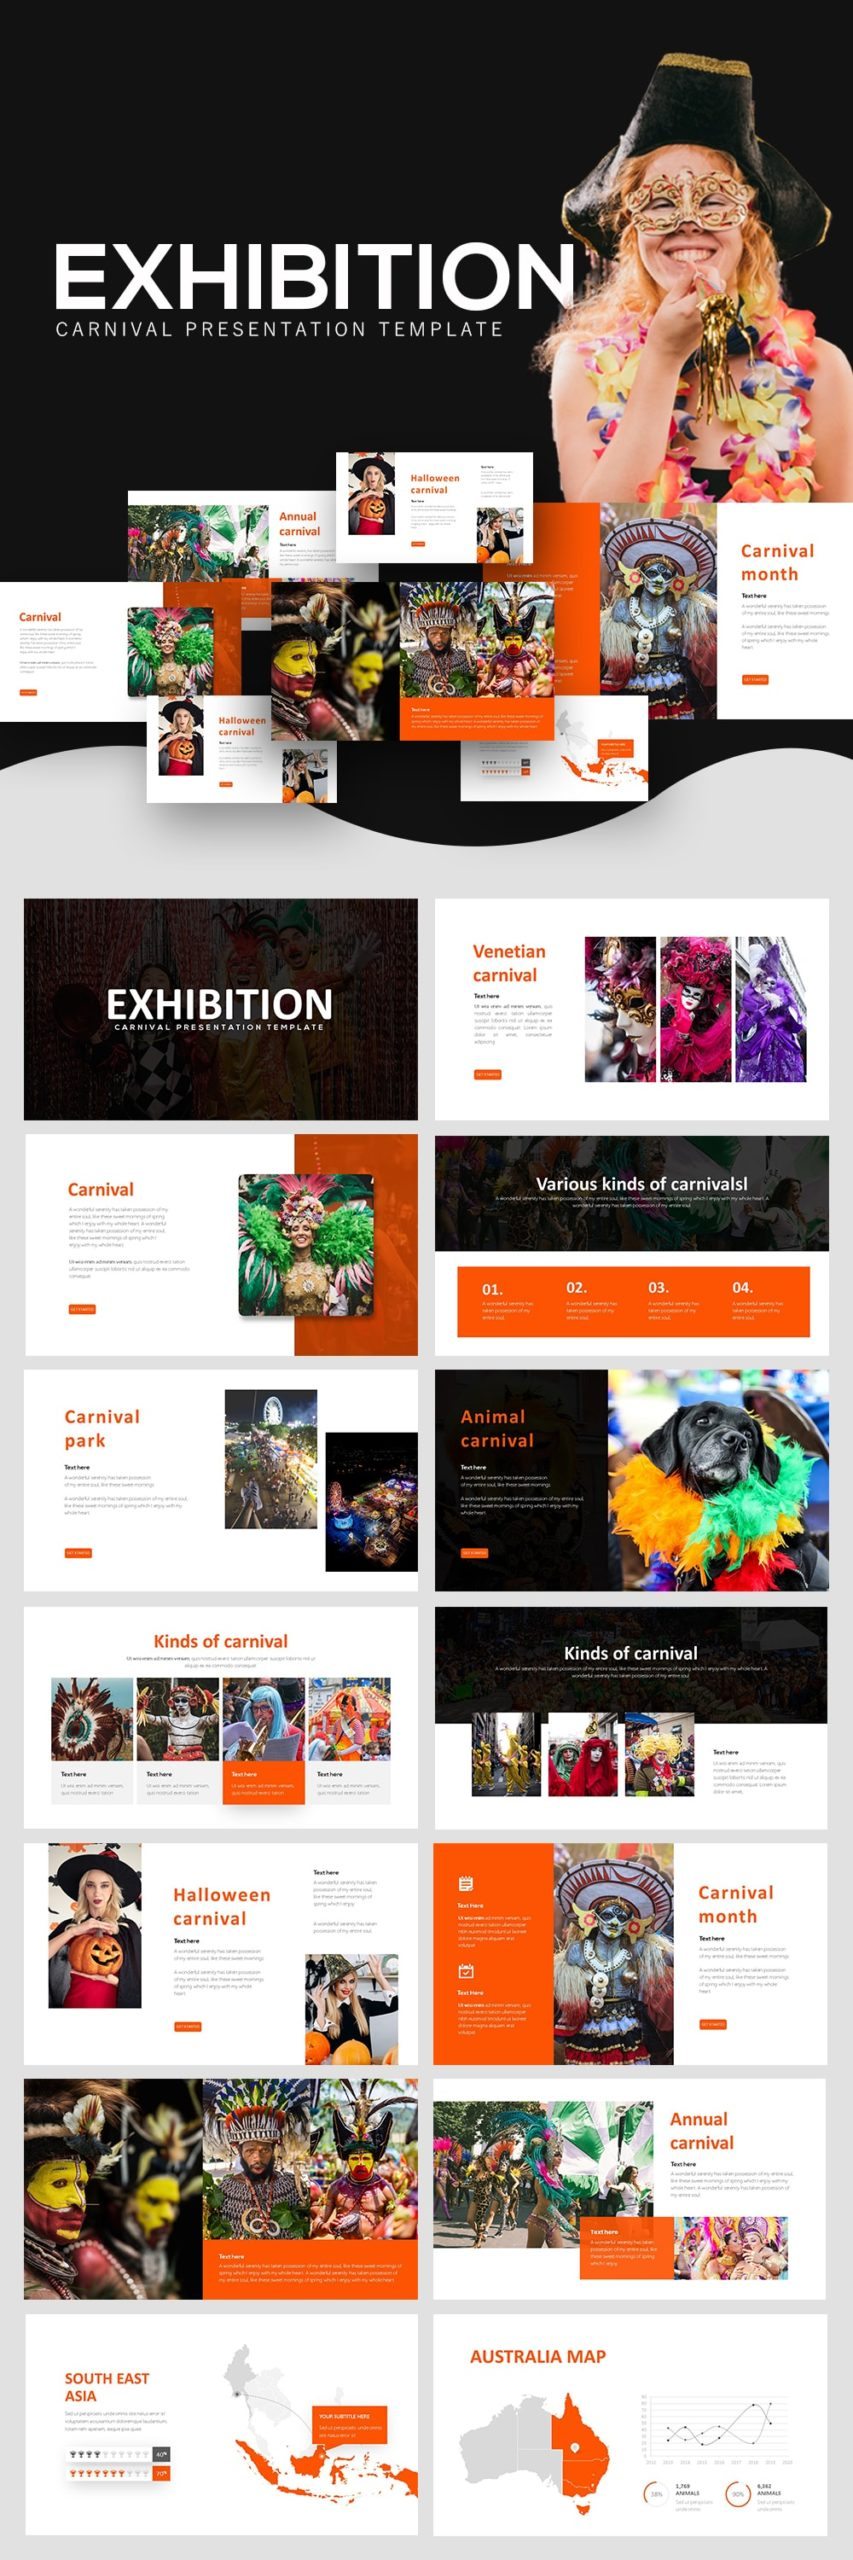 Free Exhibition Carnival PowerPoint